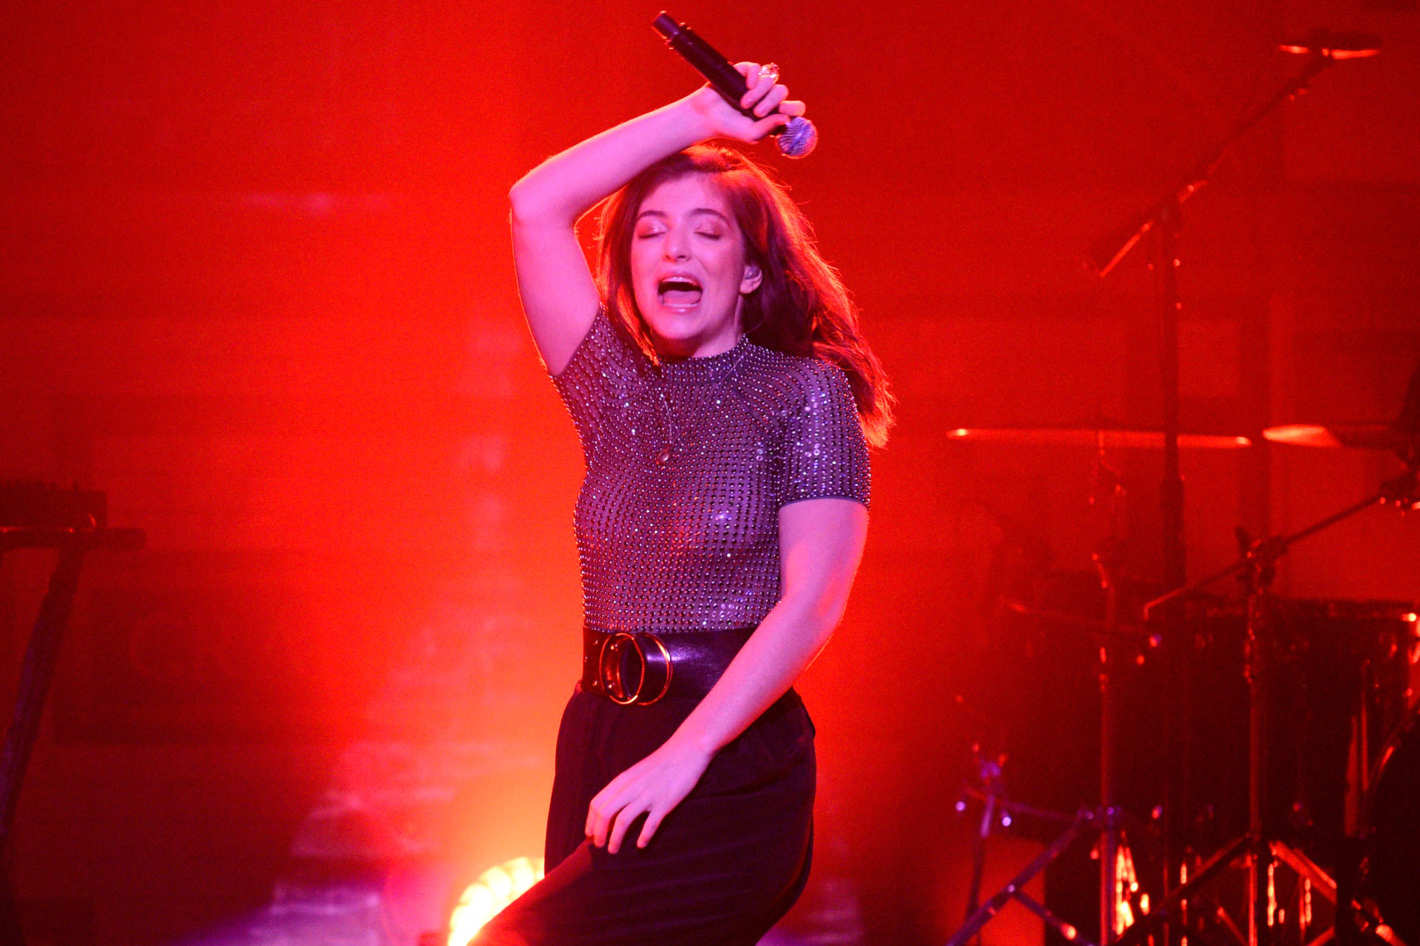 Were Lorde's Dance Moves Really That 'Bad' on SNL? A GIF Investigation